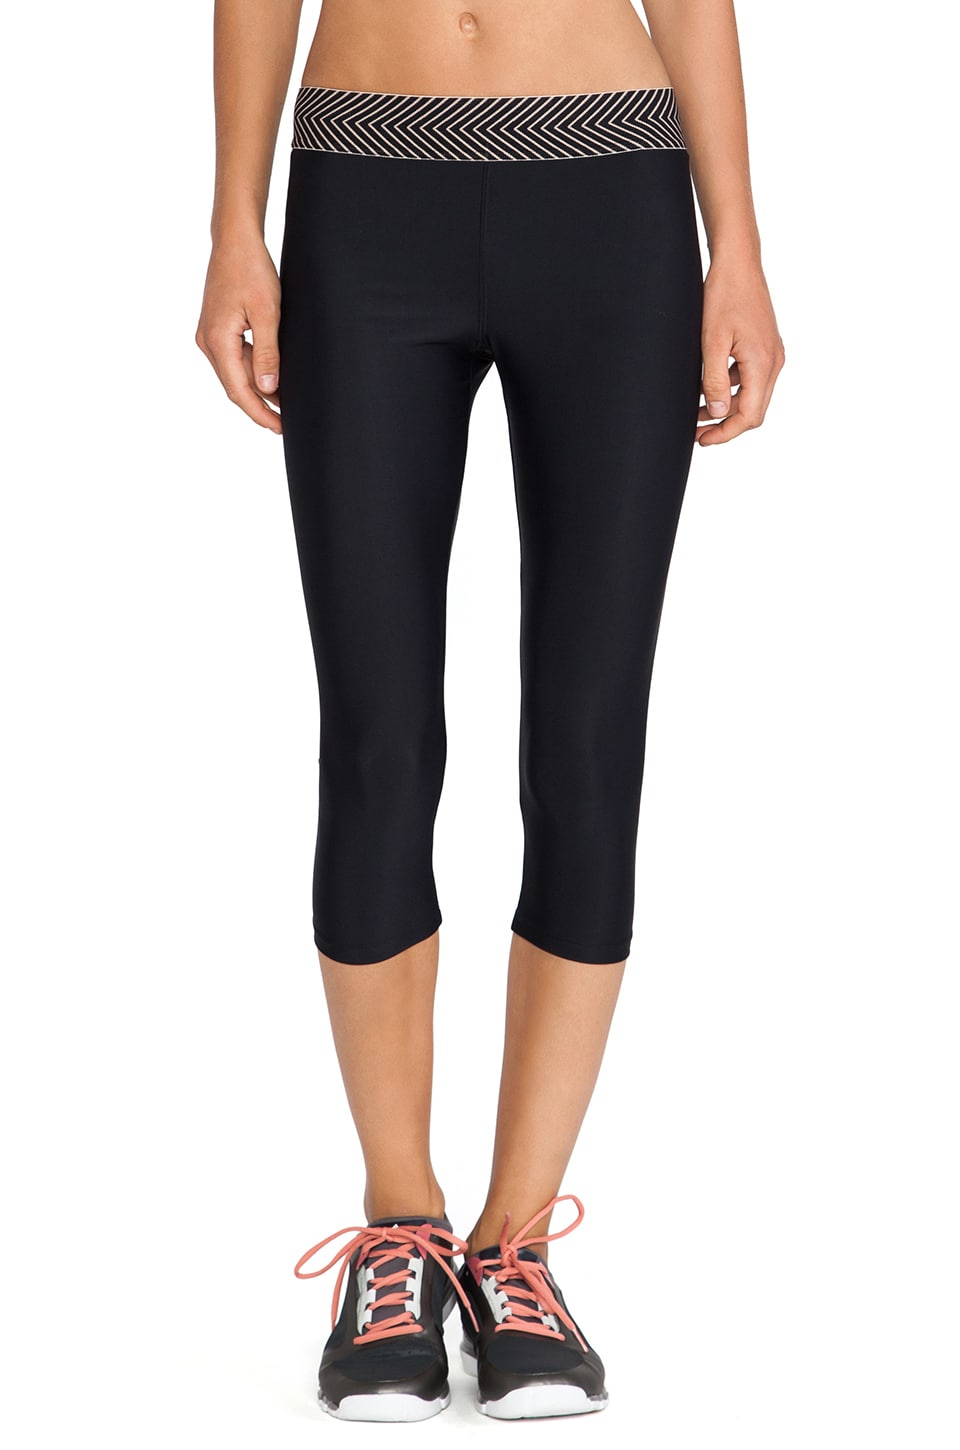 OLYMPIA Activewear Elis 3/4 Legging in Black